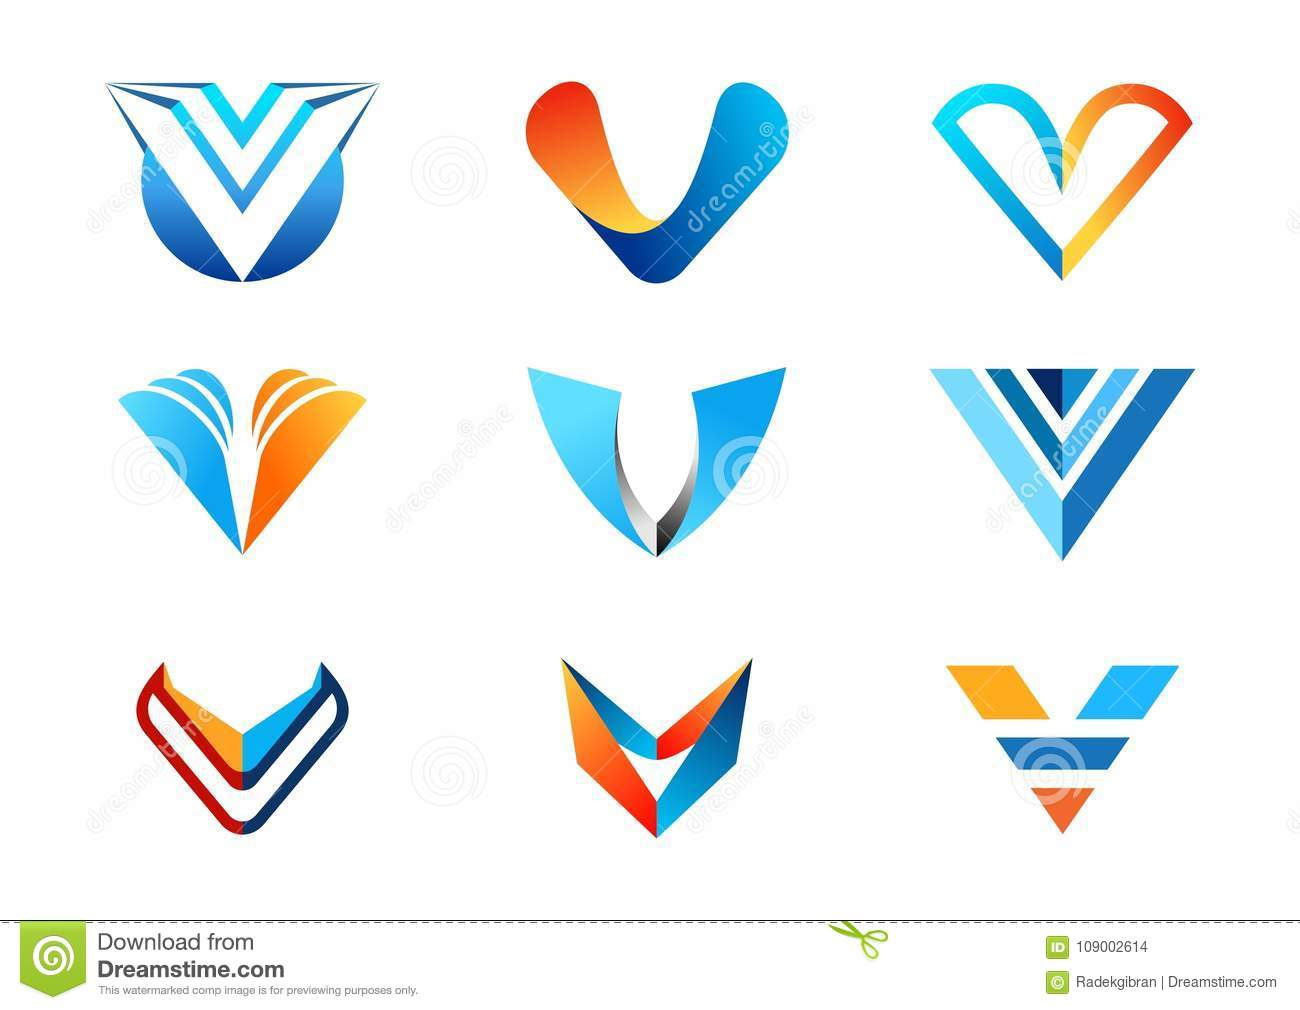 Letter V logo, abstract elements concept company logos, collection set of letters V blue business logo symbol icon vector design